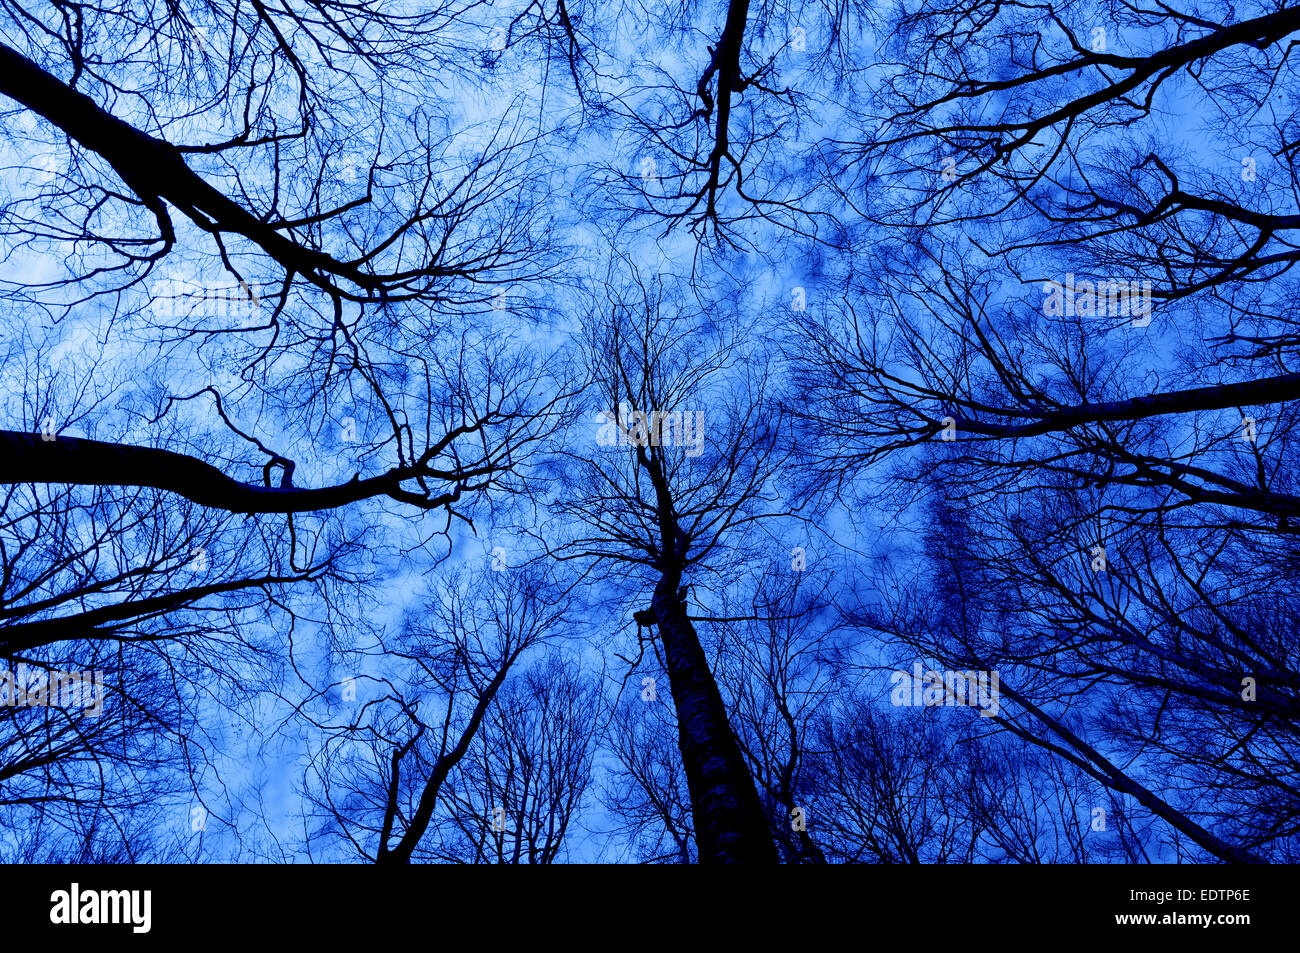 horror forest at night with a directly below persective - Stock Image